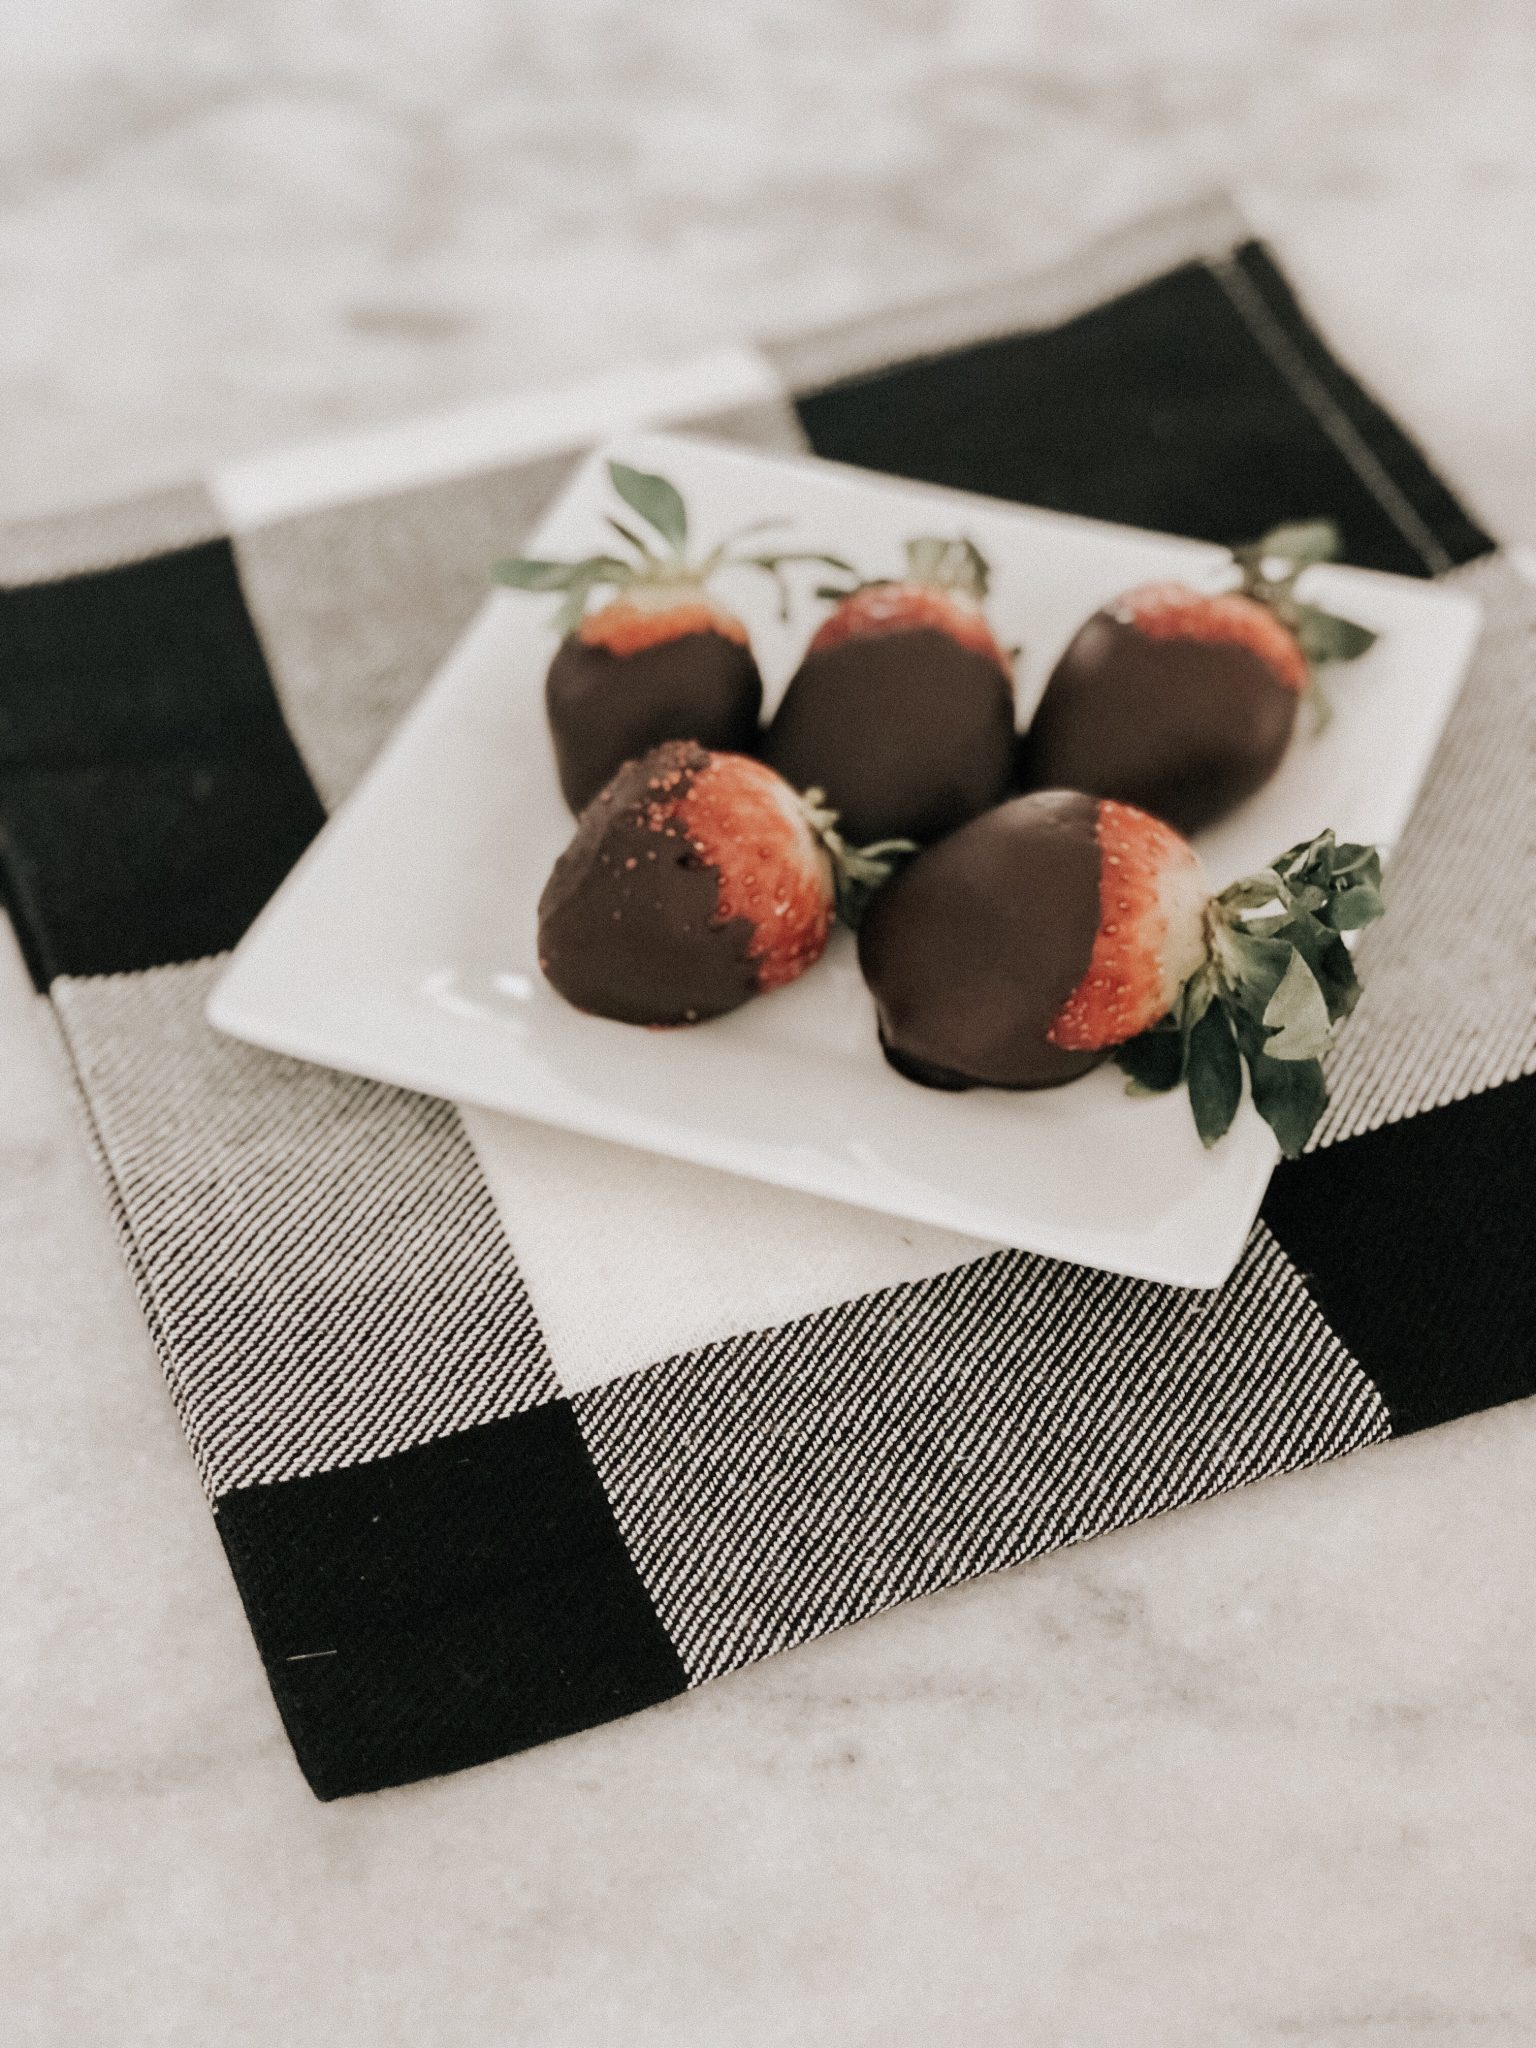 A valentines treat | Daily Splendor Life and Style Blog | Chocolate Covered strawberries